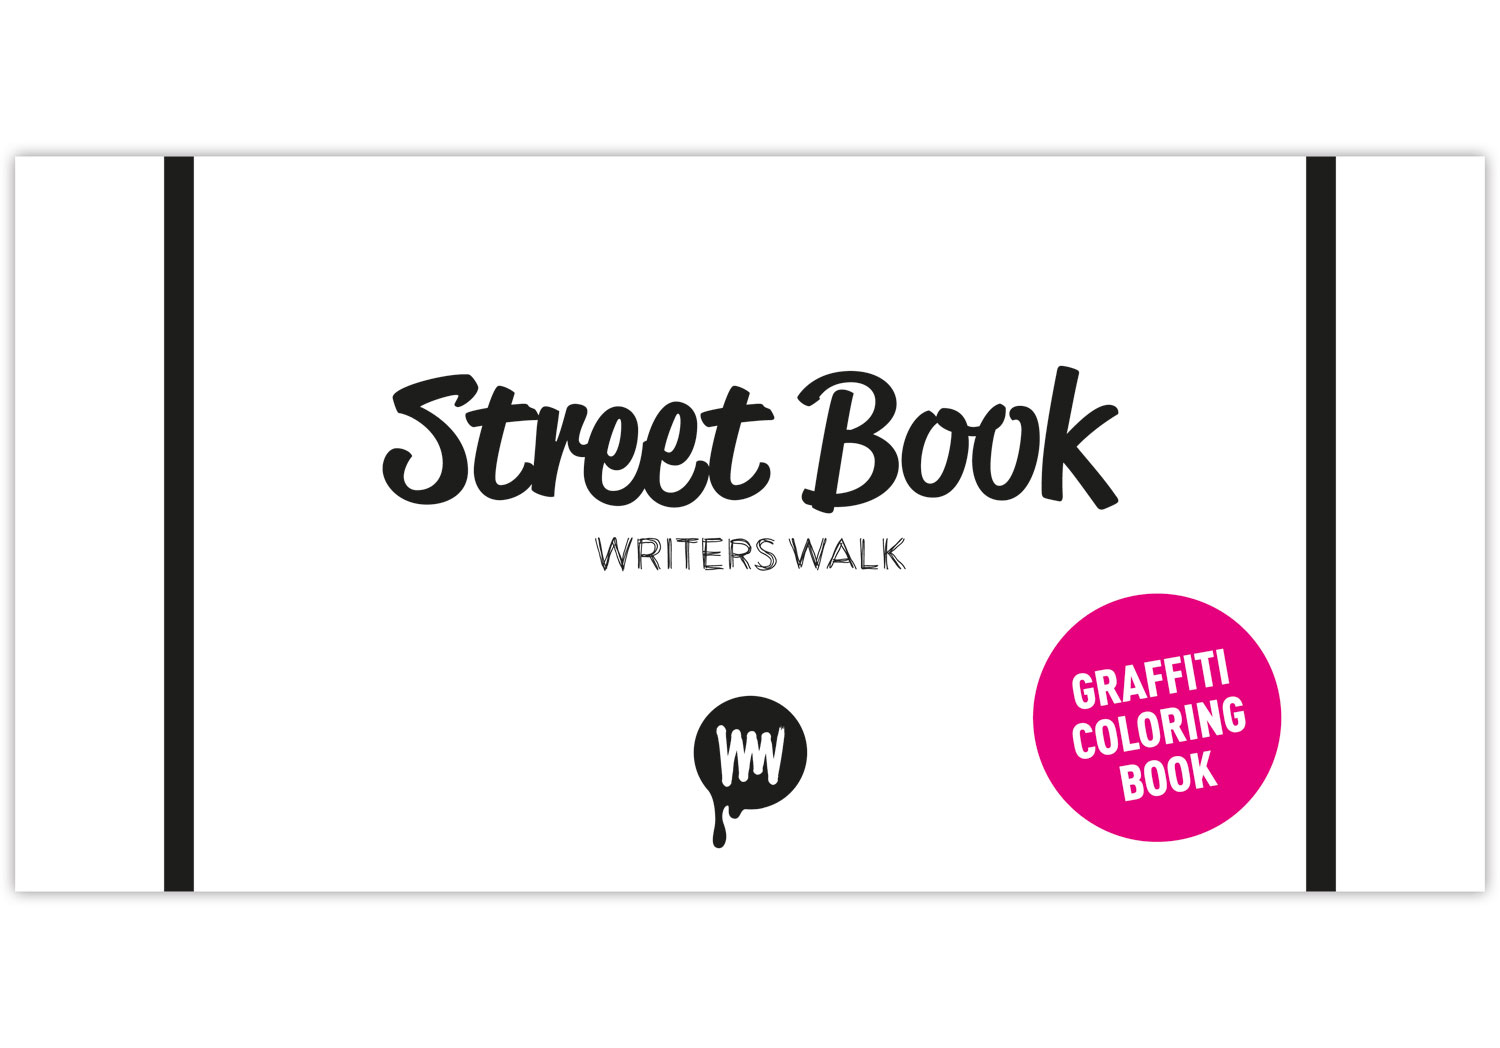 publikat-publishing-street-book-buch-1330-zoom-0